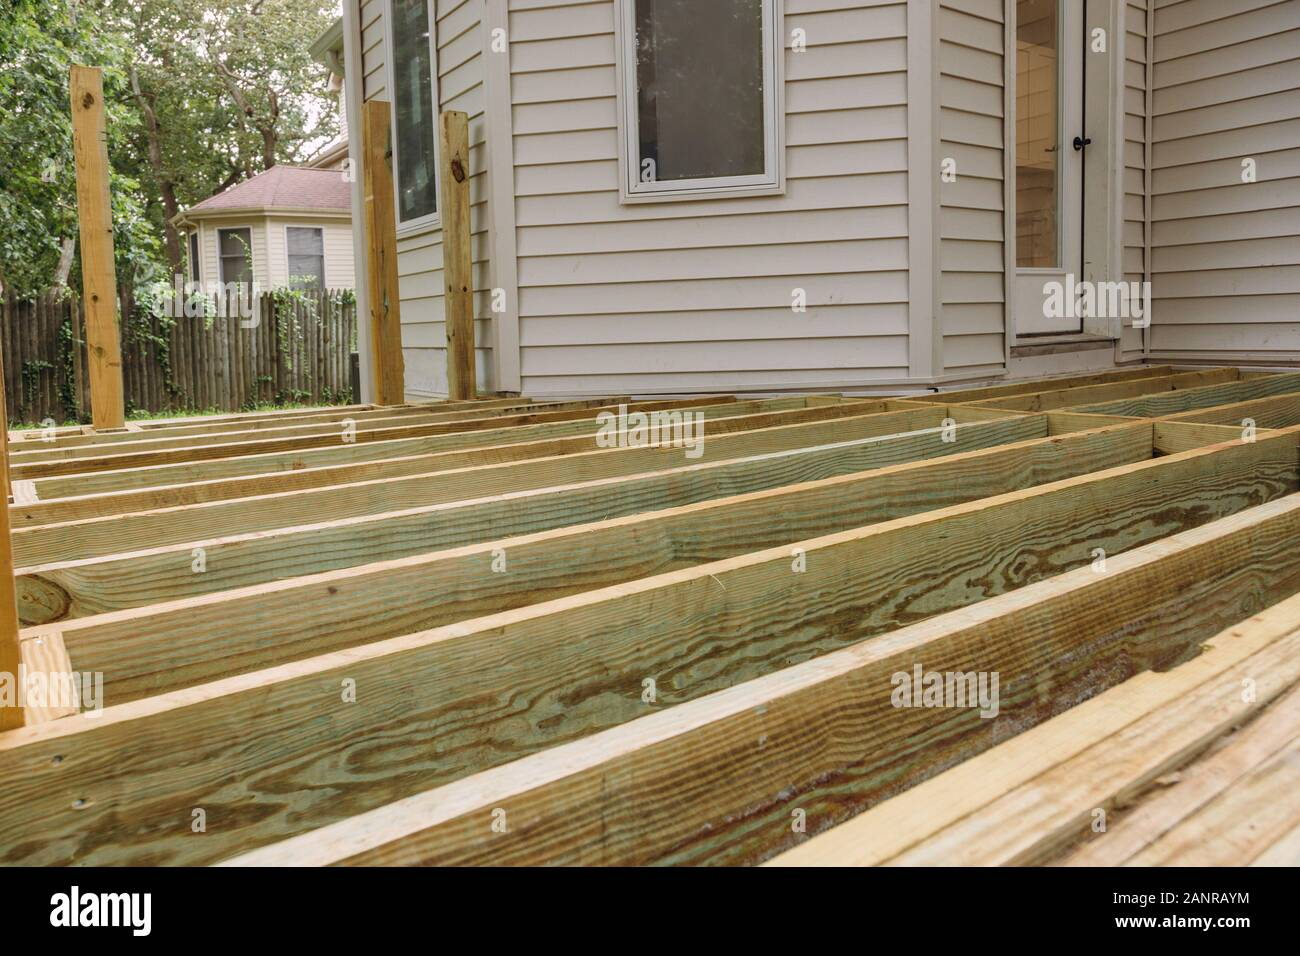 Building A Patio With Wooden Porch Terrace Flooring In Patio